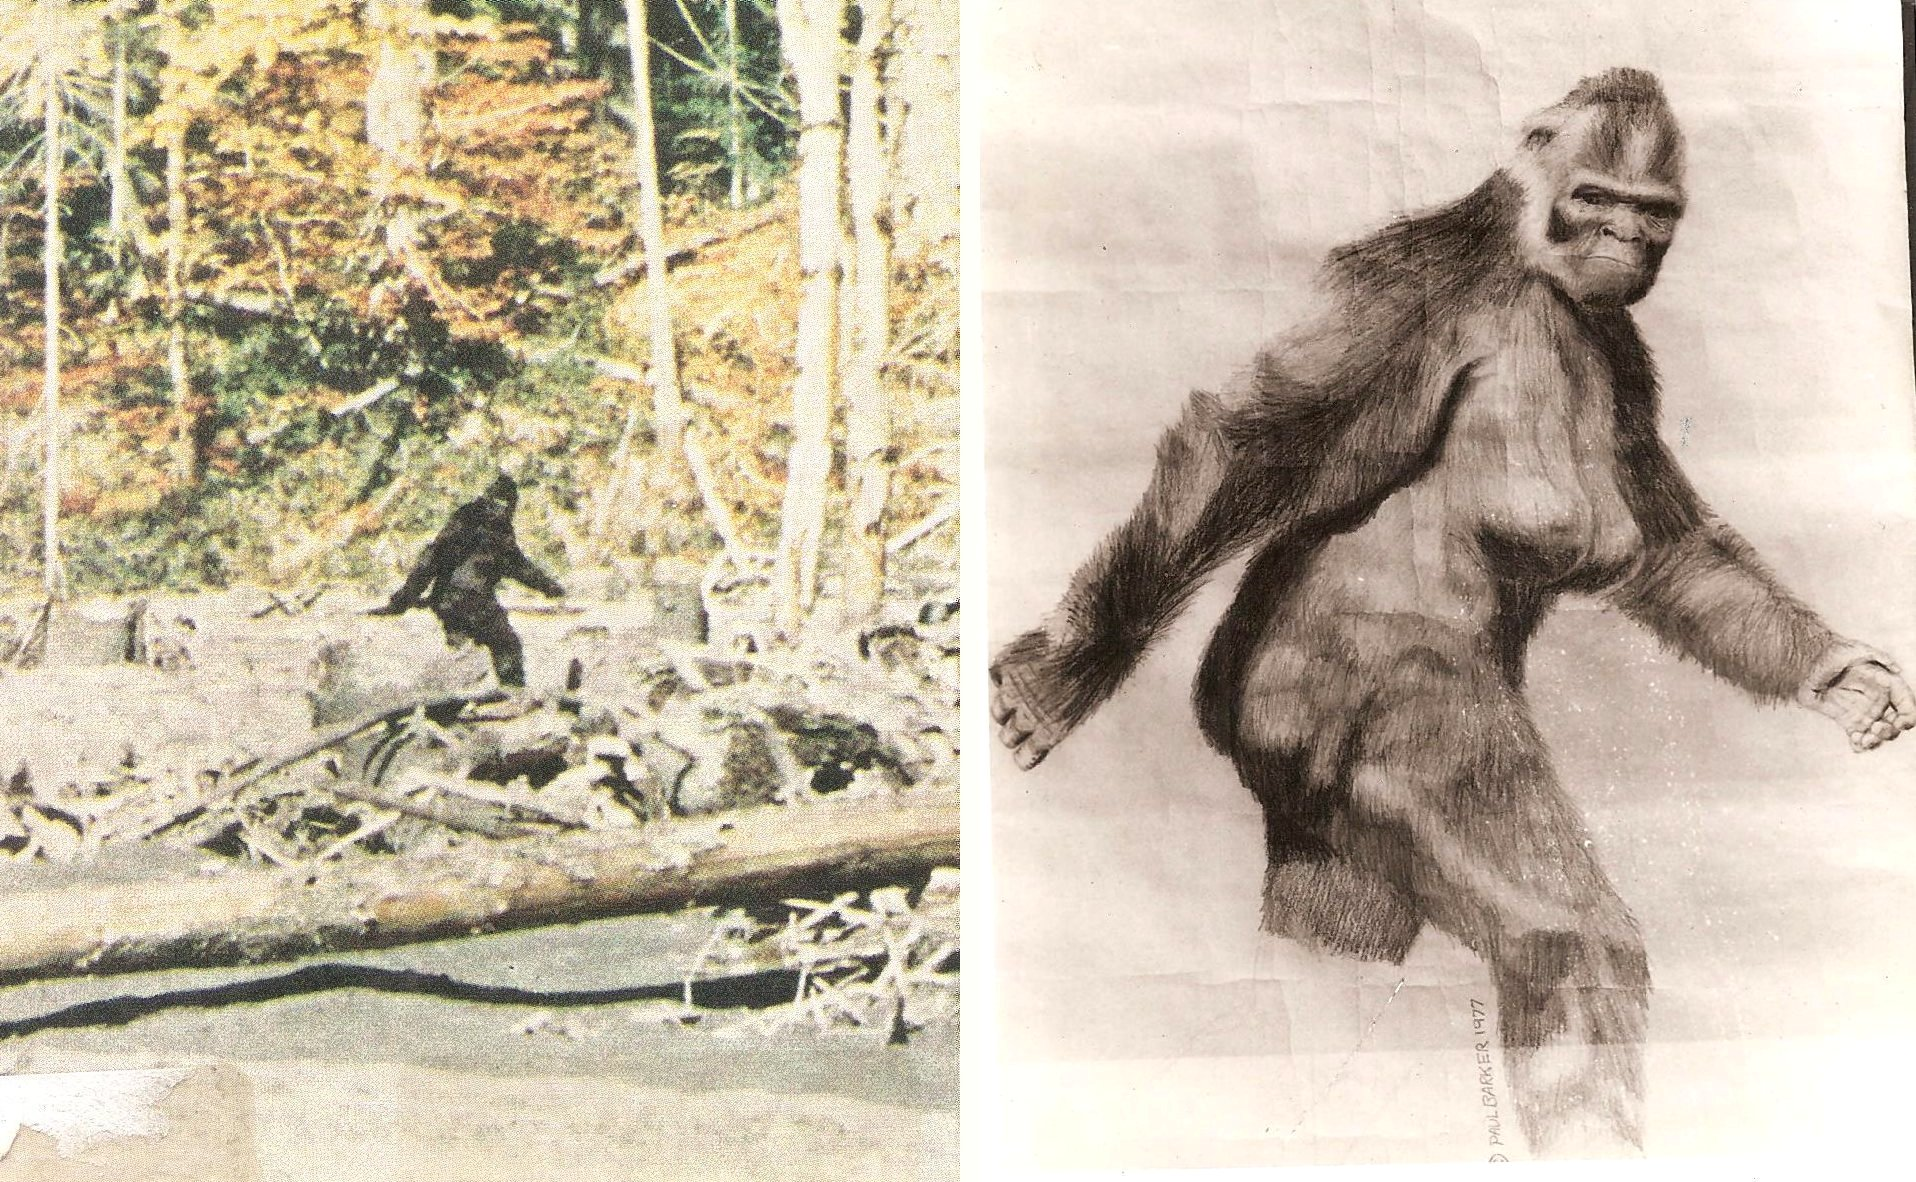 1916x1182 Sketch Of Bigfoot Sasquatch Film Image Paul Barker Googleplex Murals